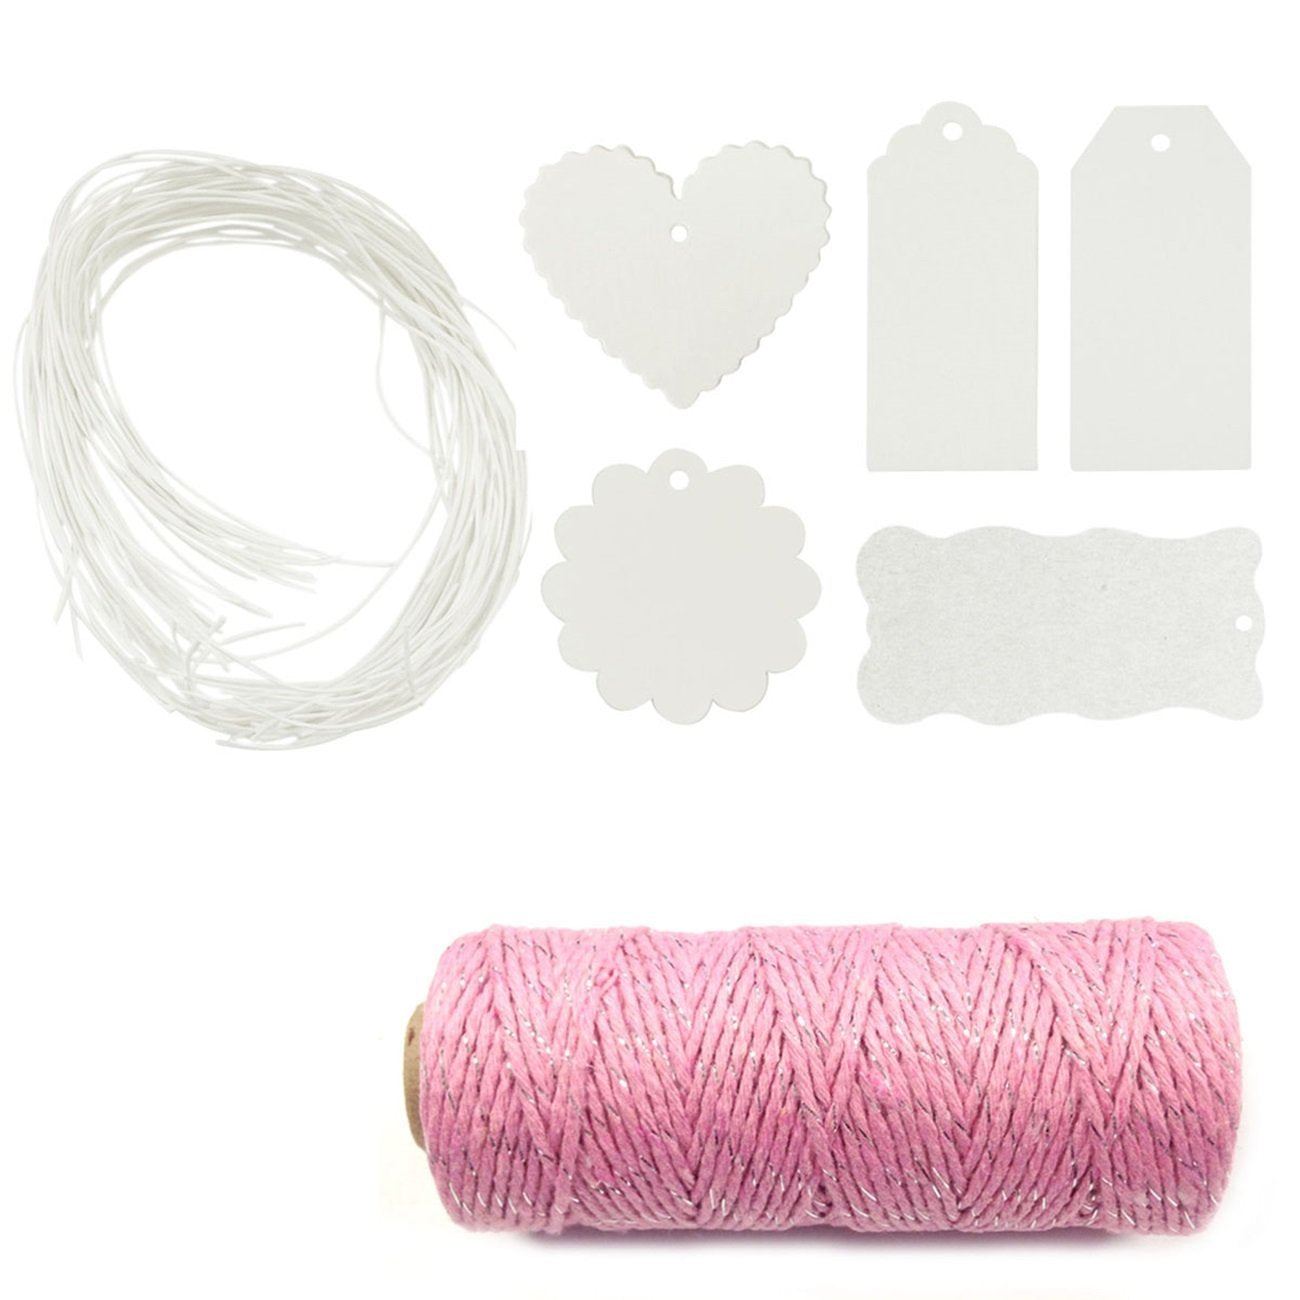 Wrapables 100 White Gift Tags with Free Cut String + Cotton Baker's Twine 12ply 110 Yard, Pink/Metallic Silver